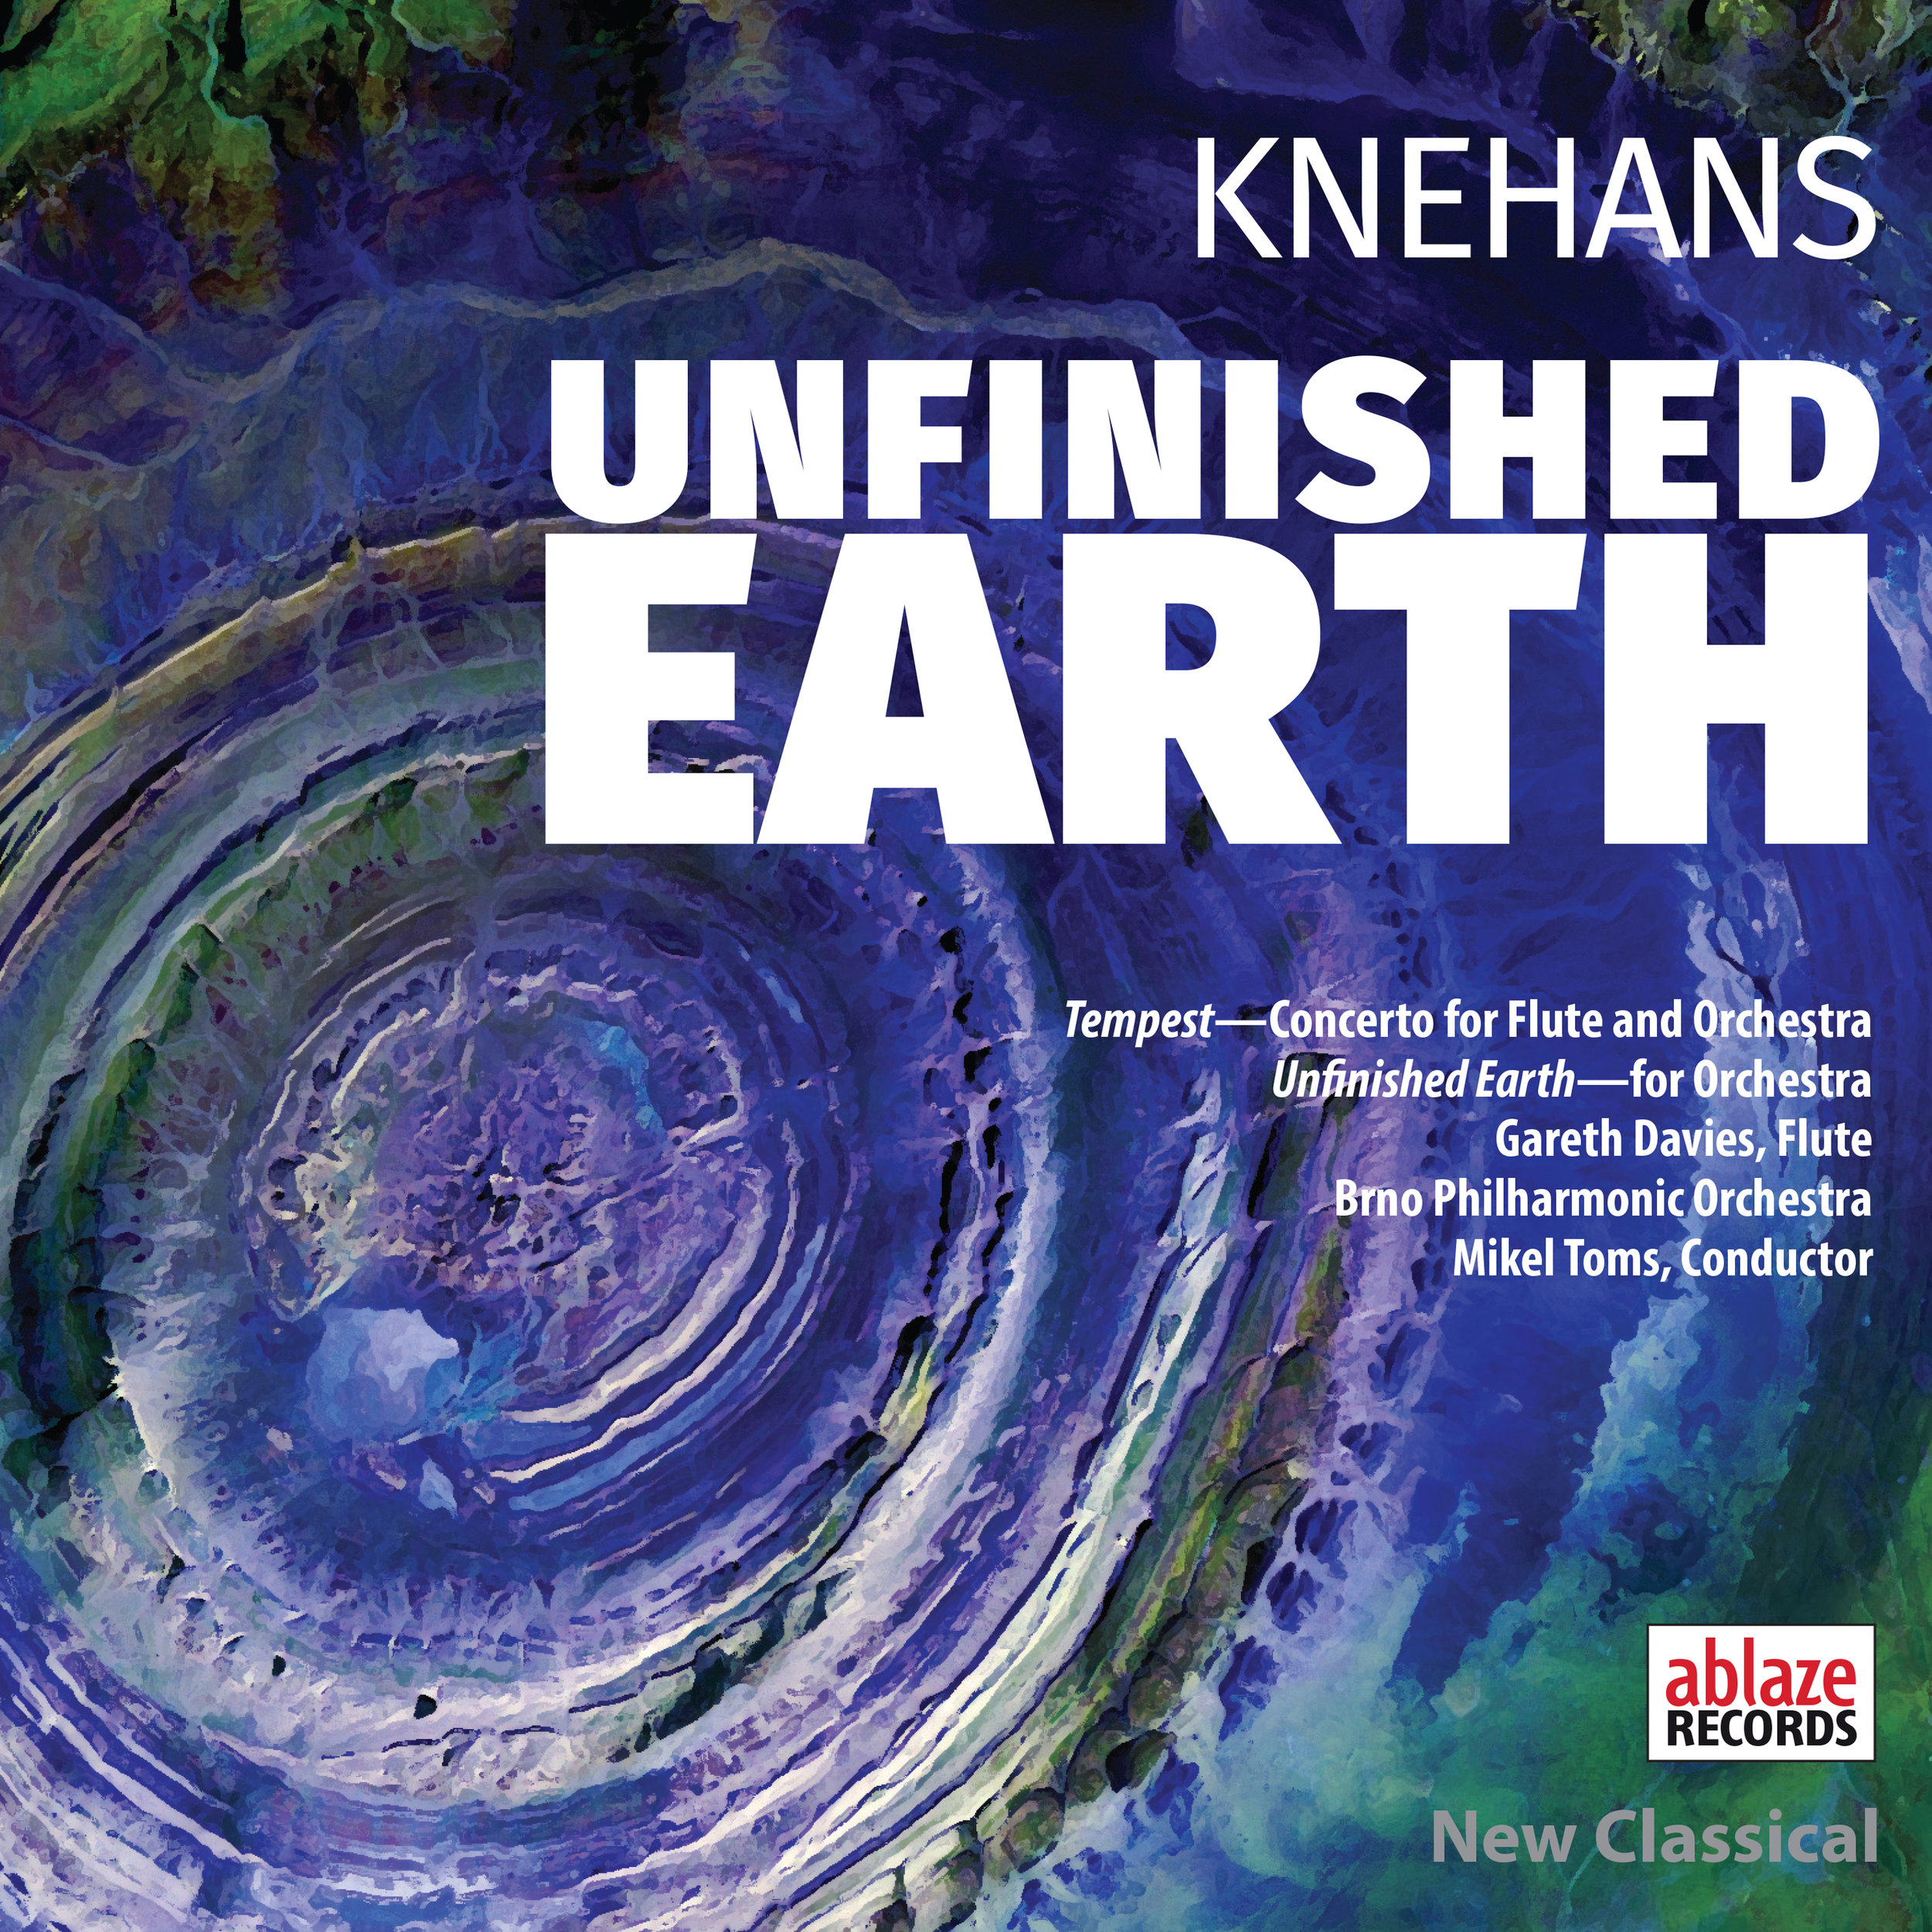 Cover_Douglas_Knehans_Unfinished_Earth_300dpi_3000pix.jpg